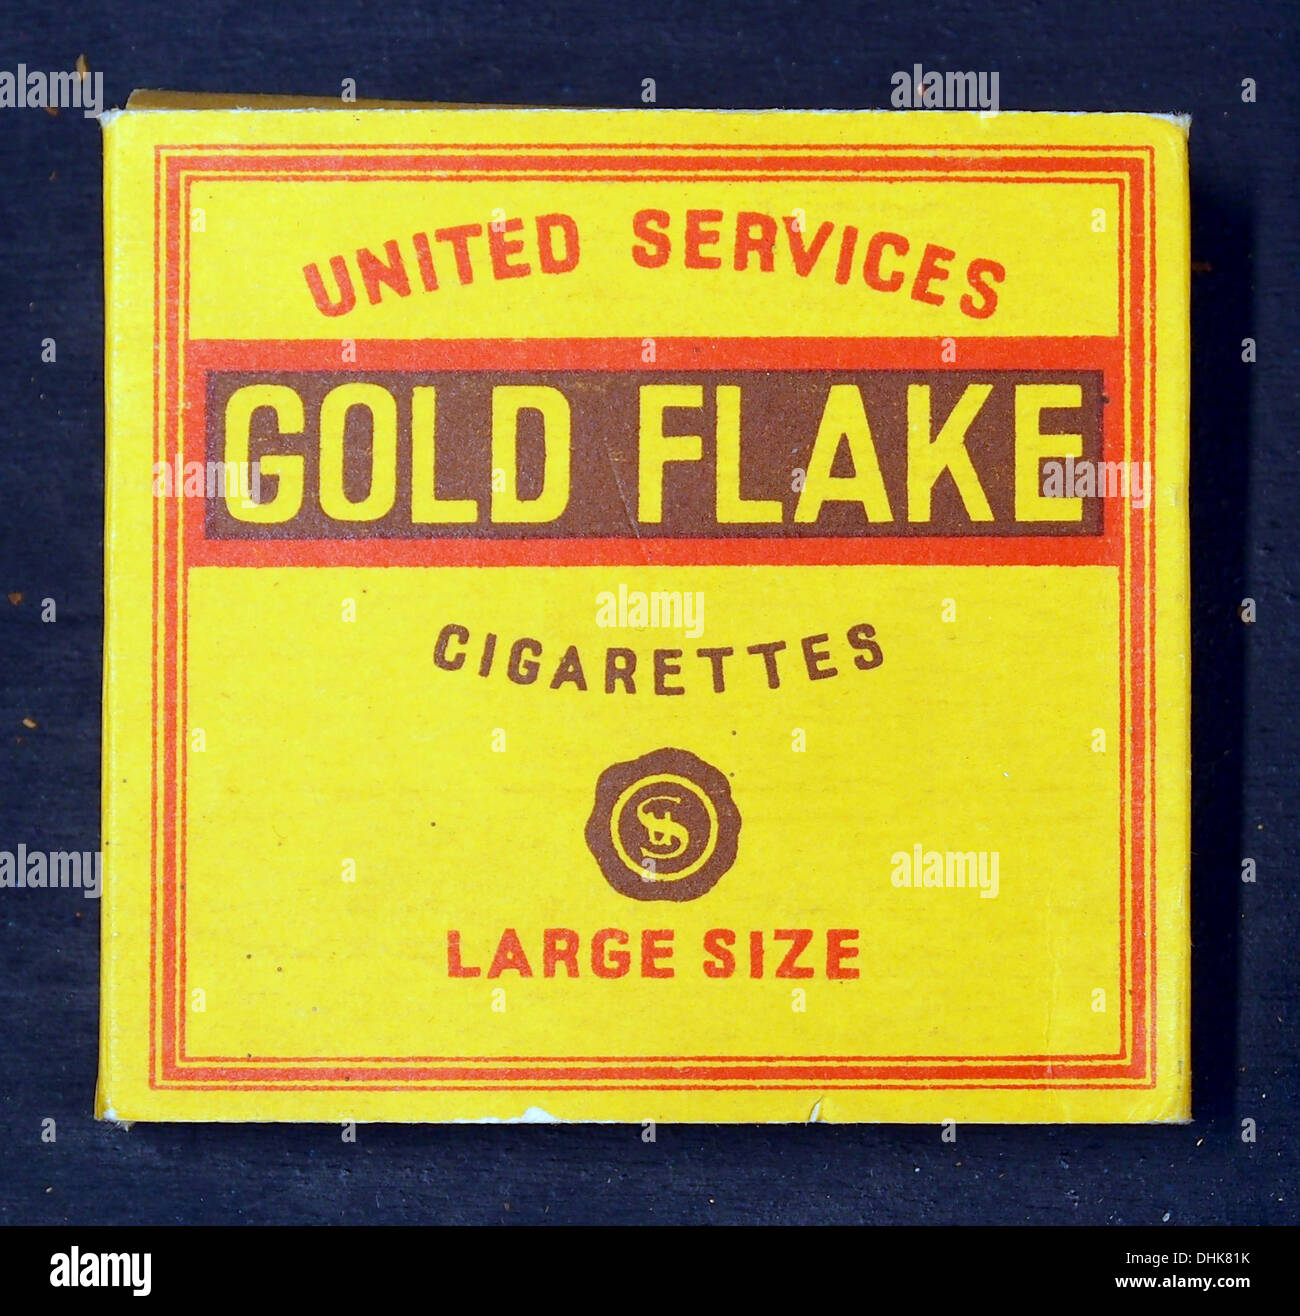 Gold Flake cigarettes, large size frontside - Stock Image